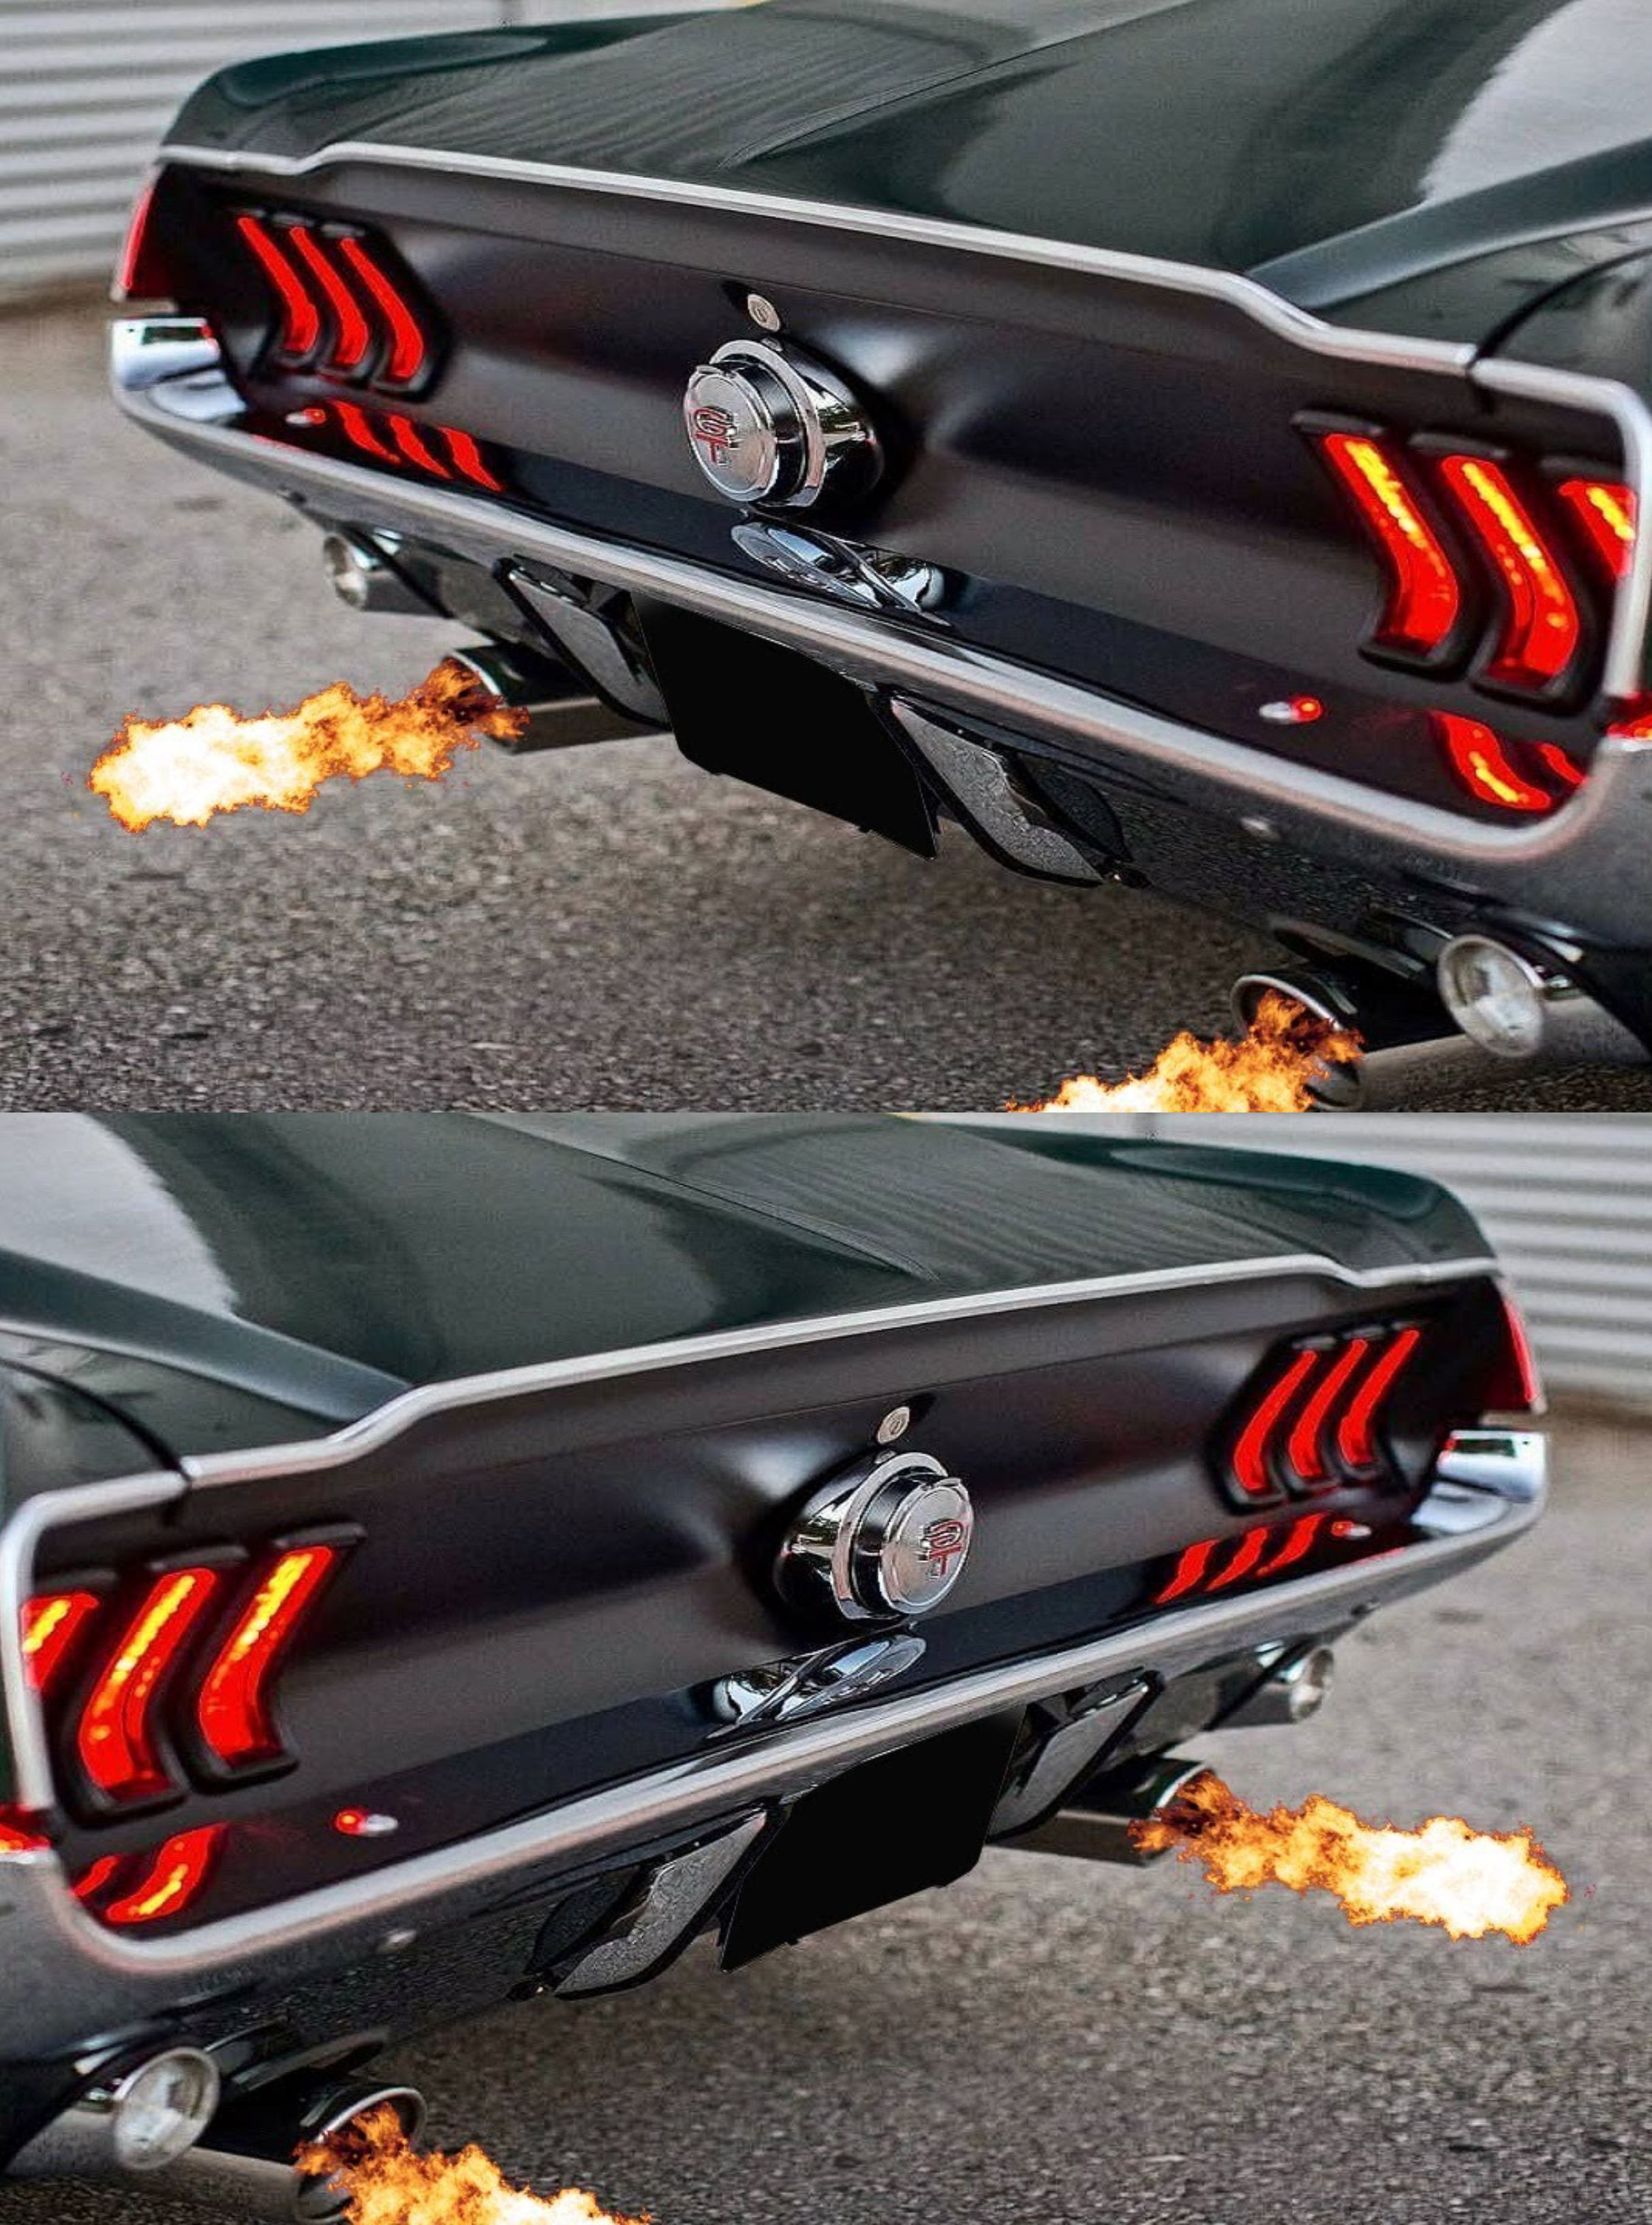 67 Ford Mustang Fastback Loud Exhaust Sound Compilation Ford